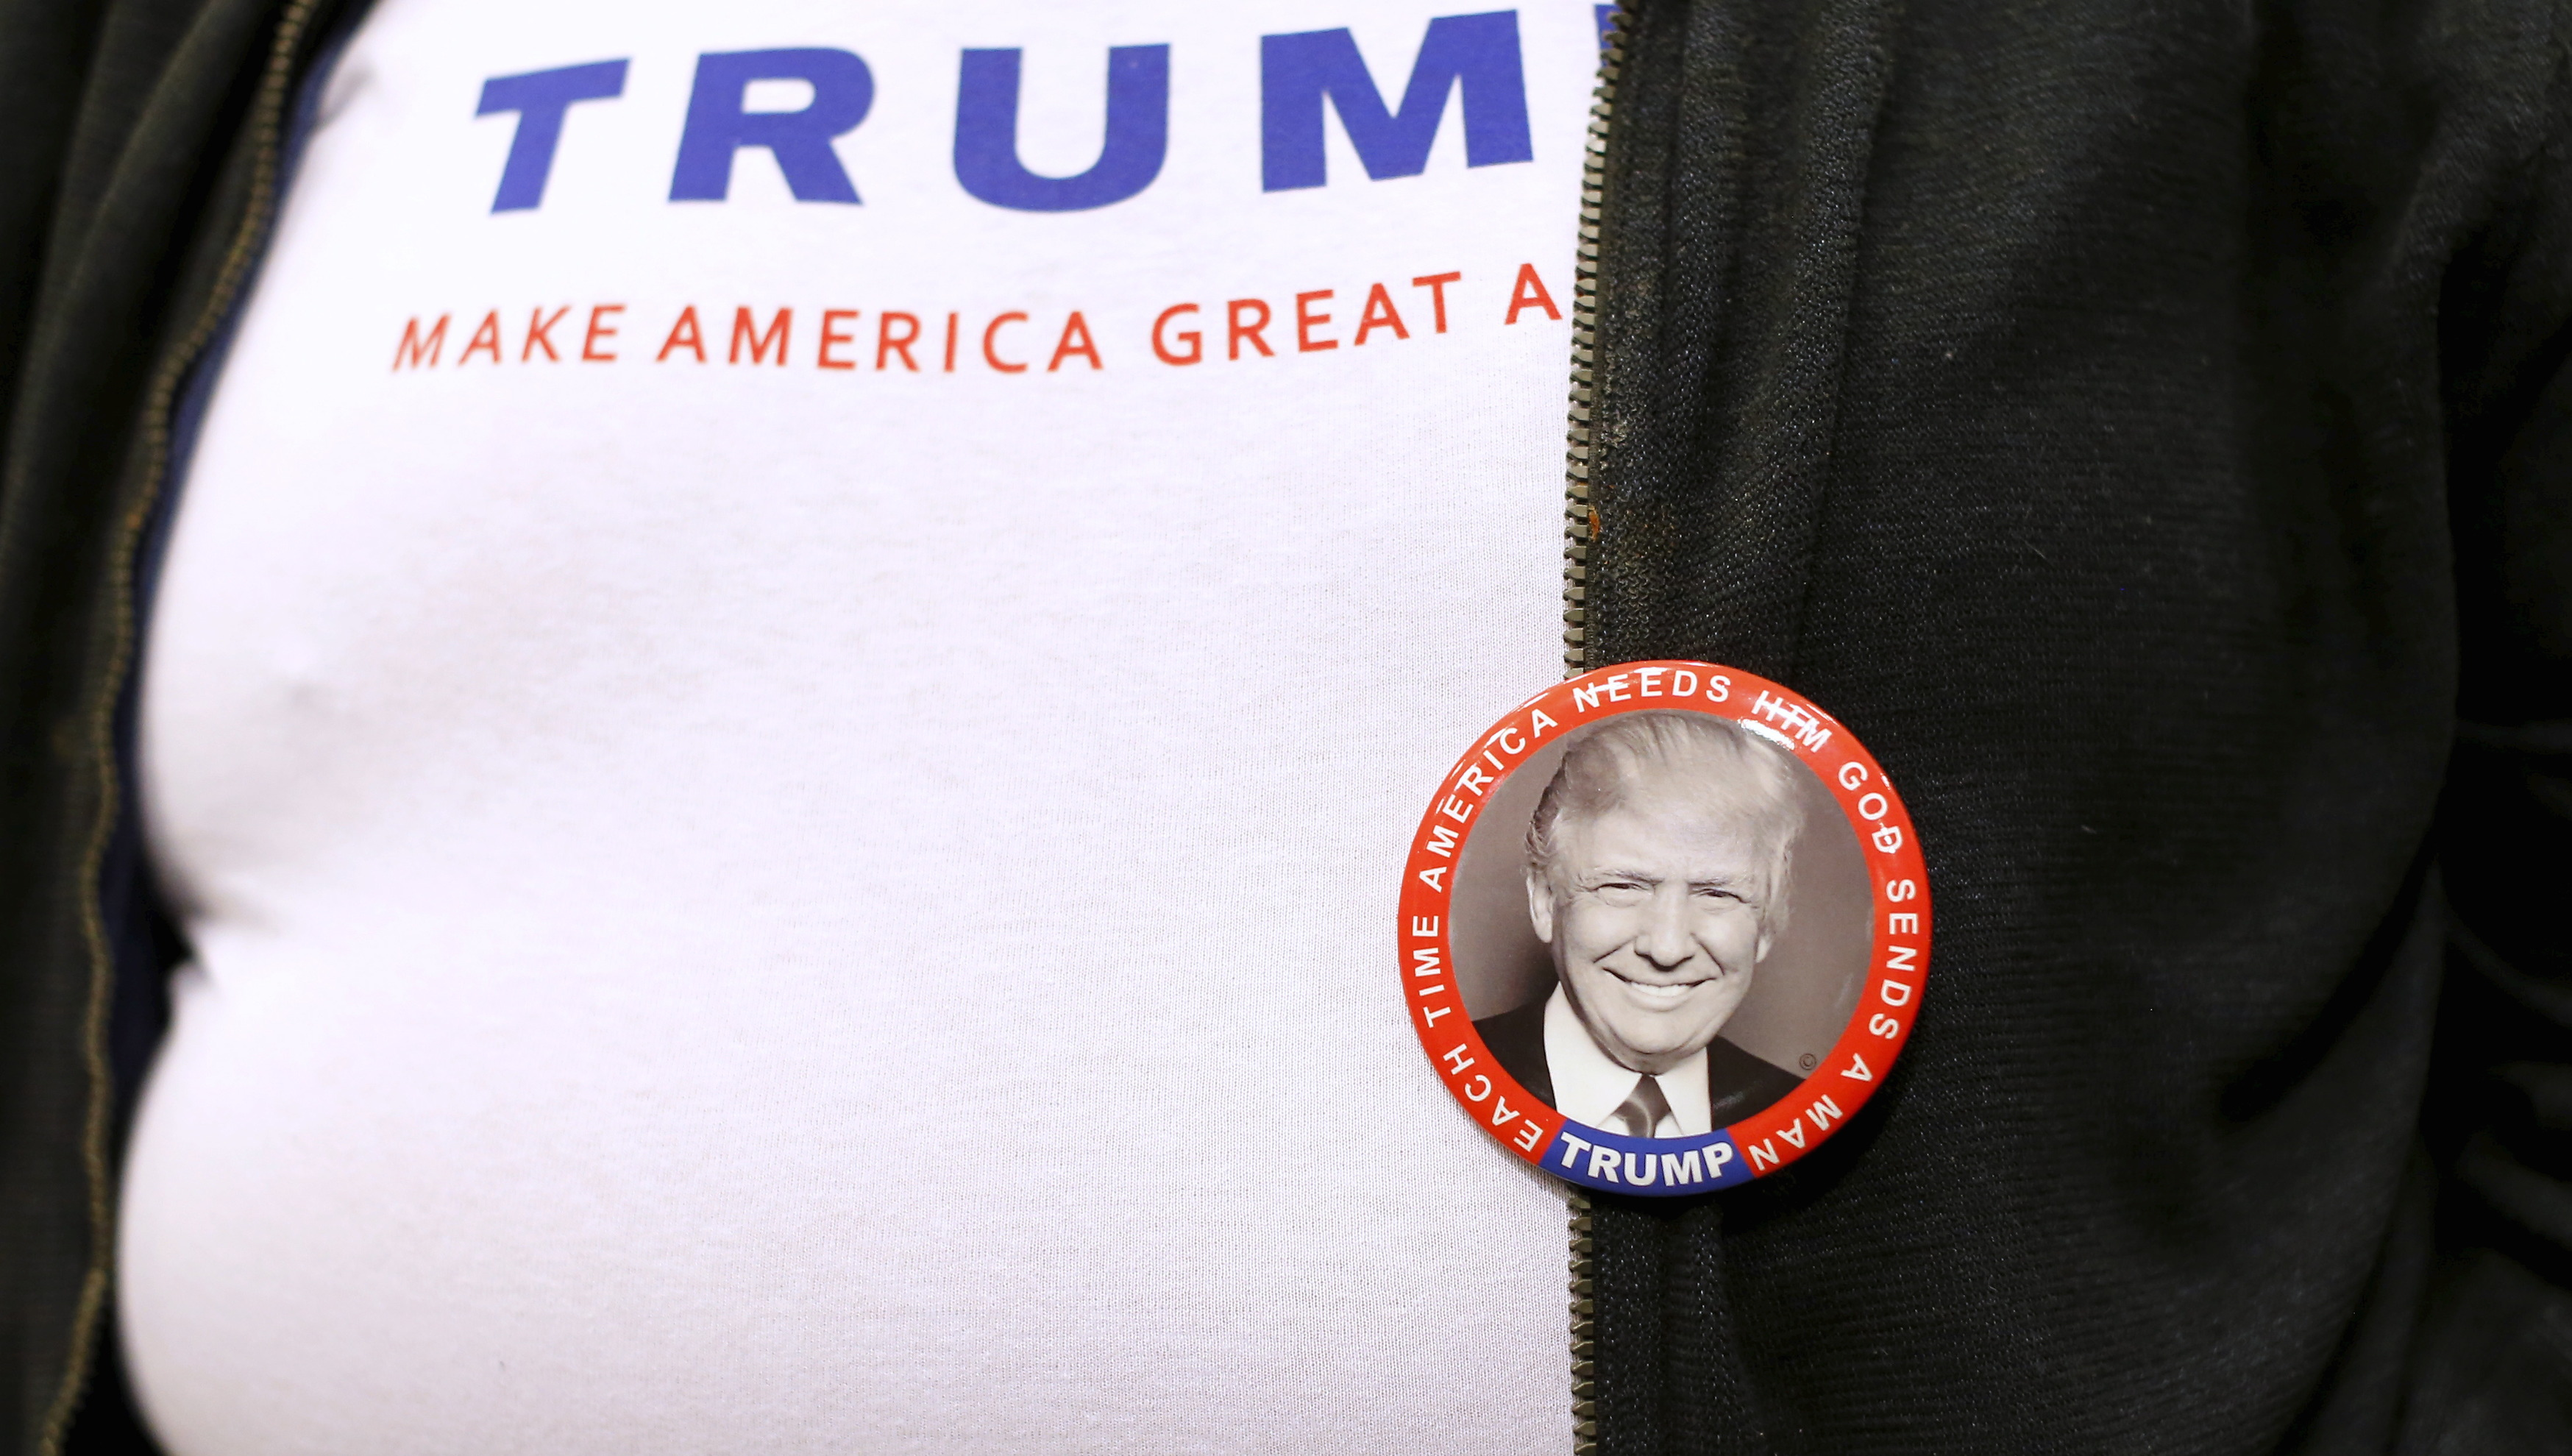 A supporter wears a t-shirt and button as he attends a rally for U.S. Republican presidential candidate Donald Trump in Las Vegas